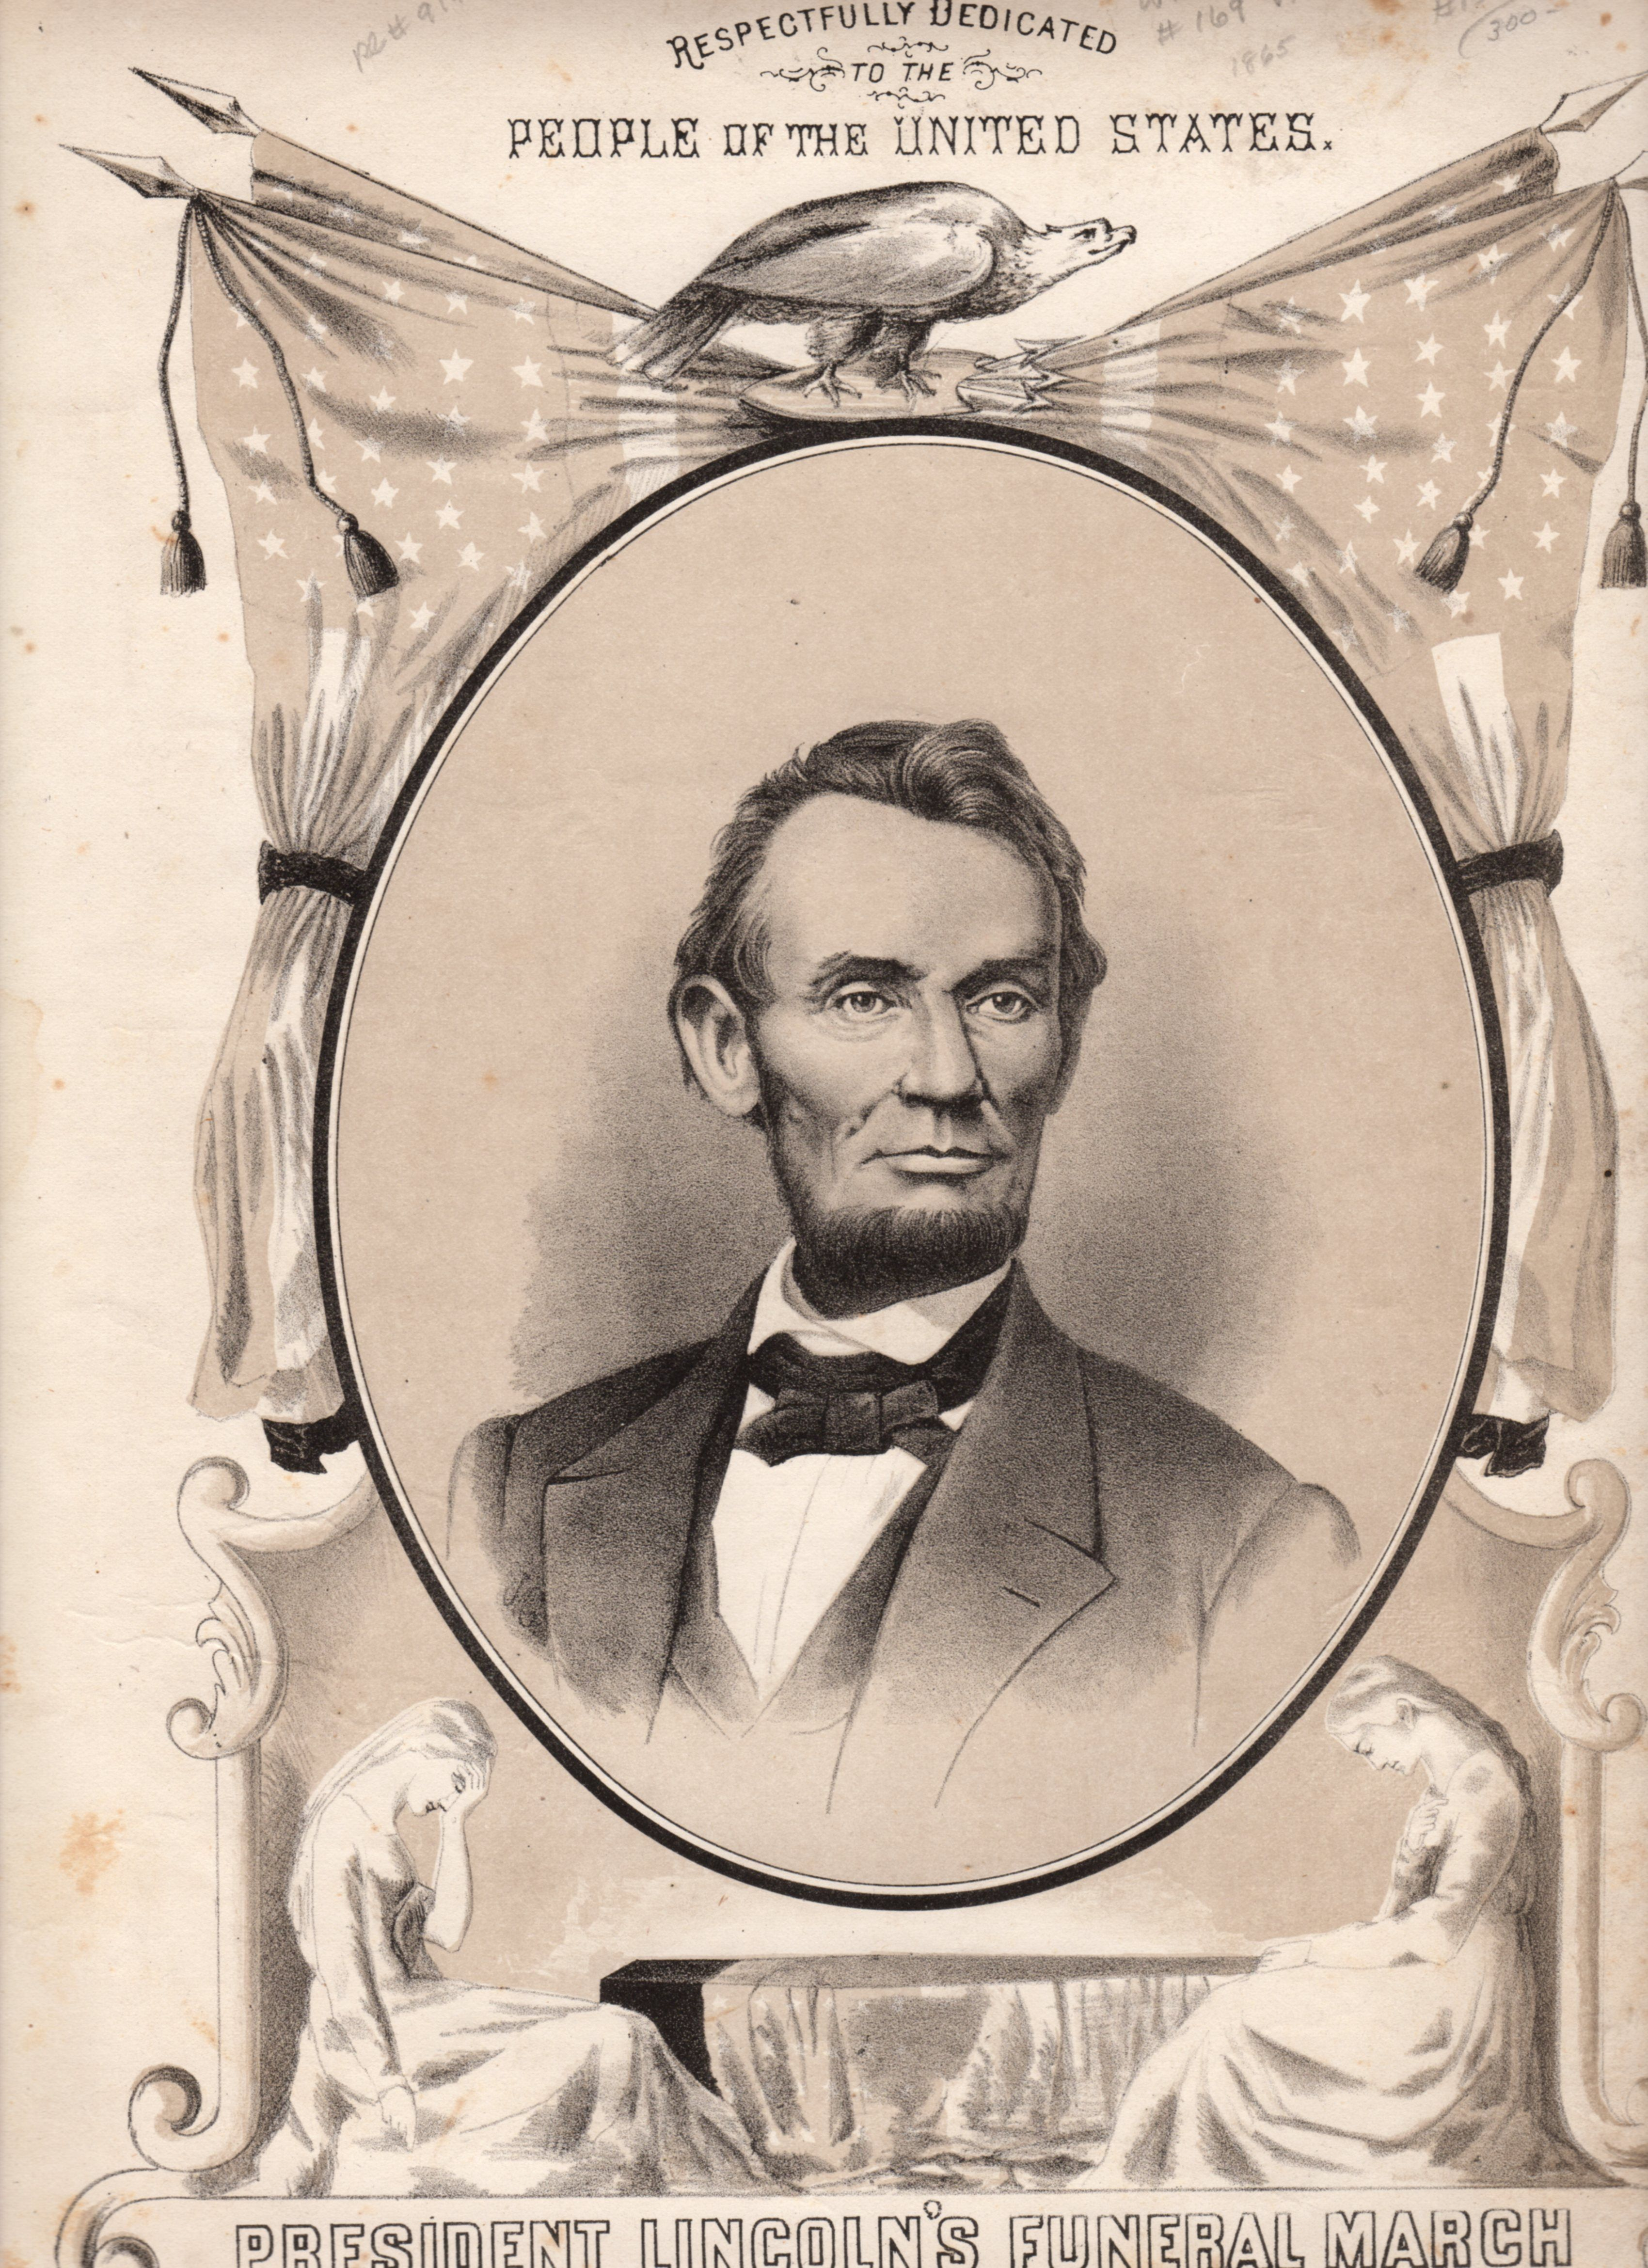 Lincoln s funeral march our beloved president was assassinated on april 14 1865 we are